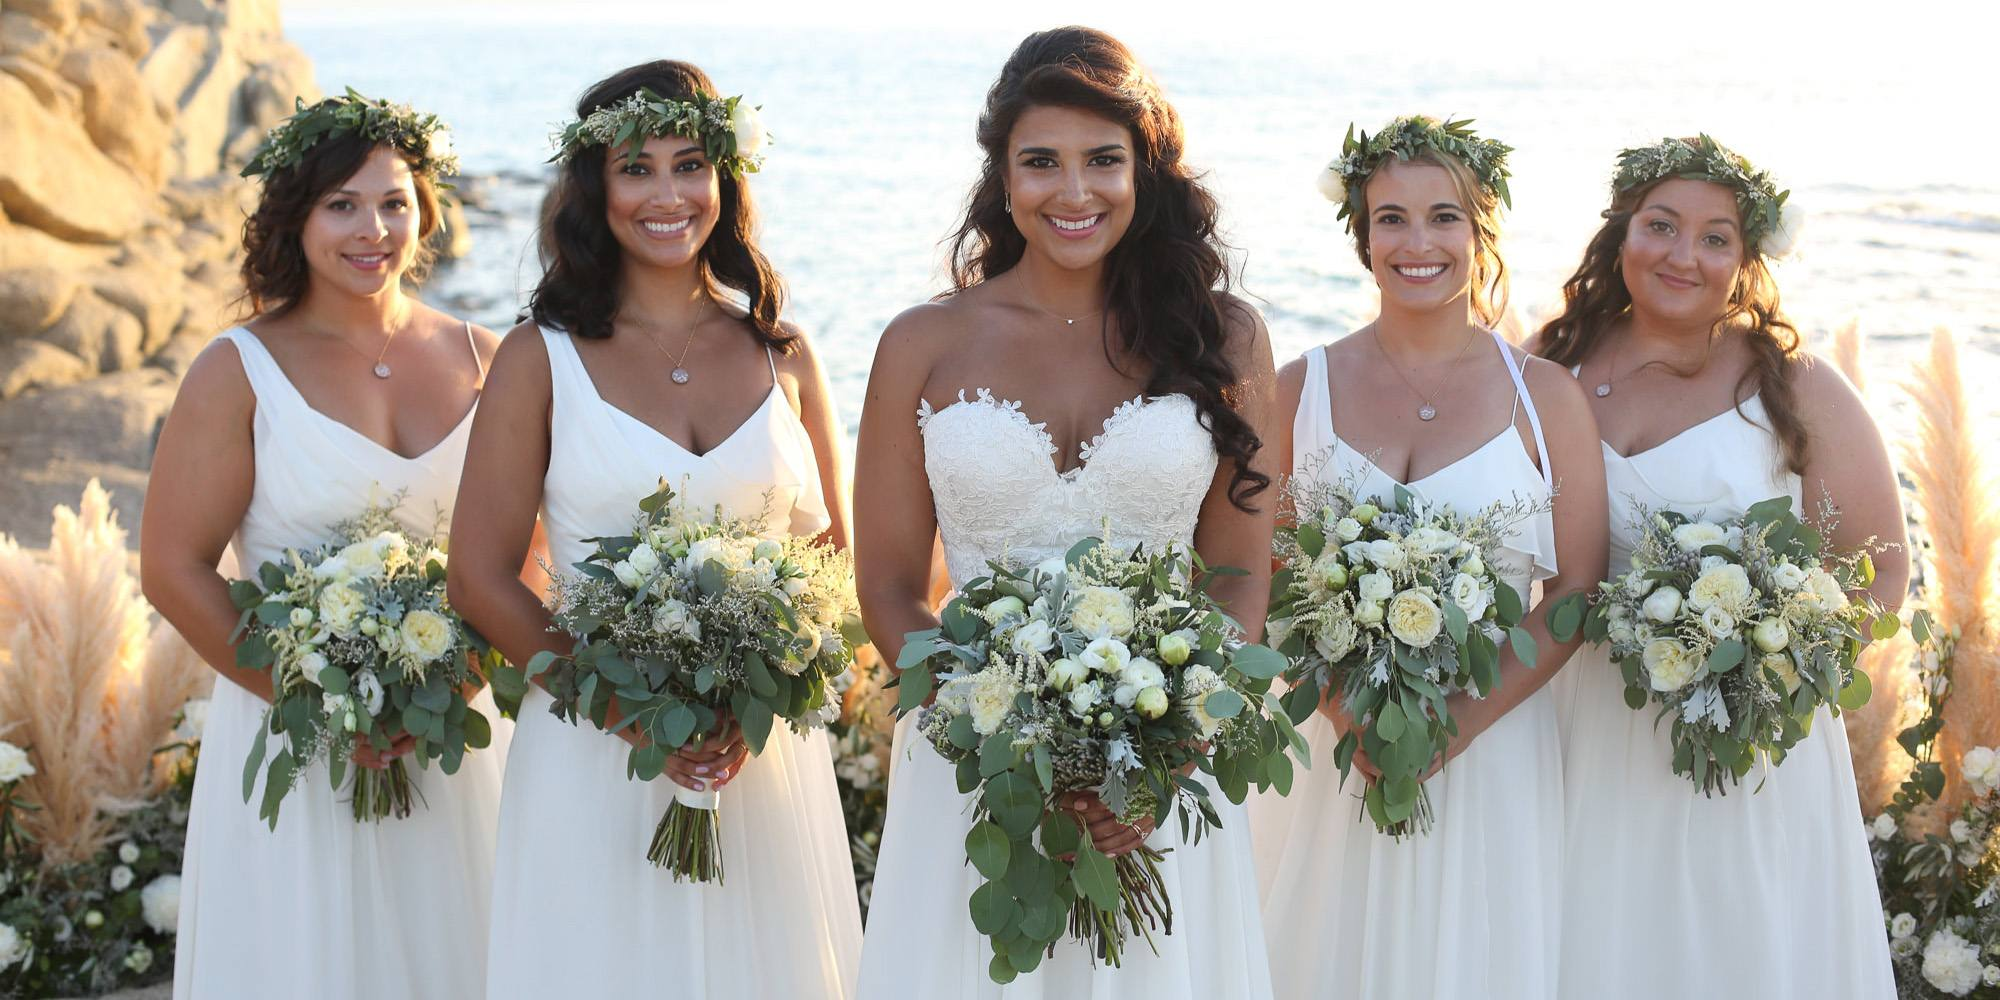 White bride and bridesmaids